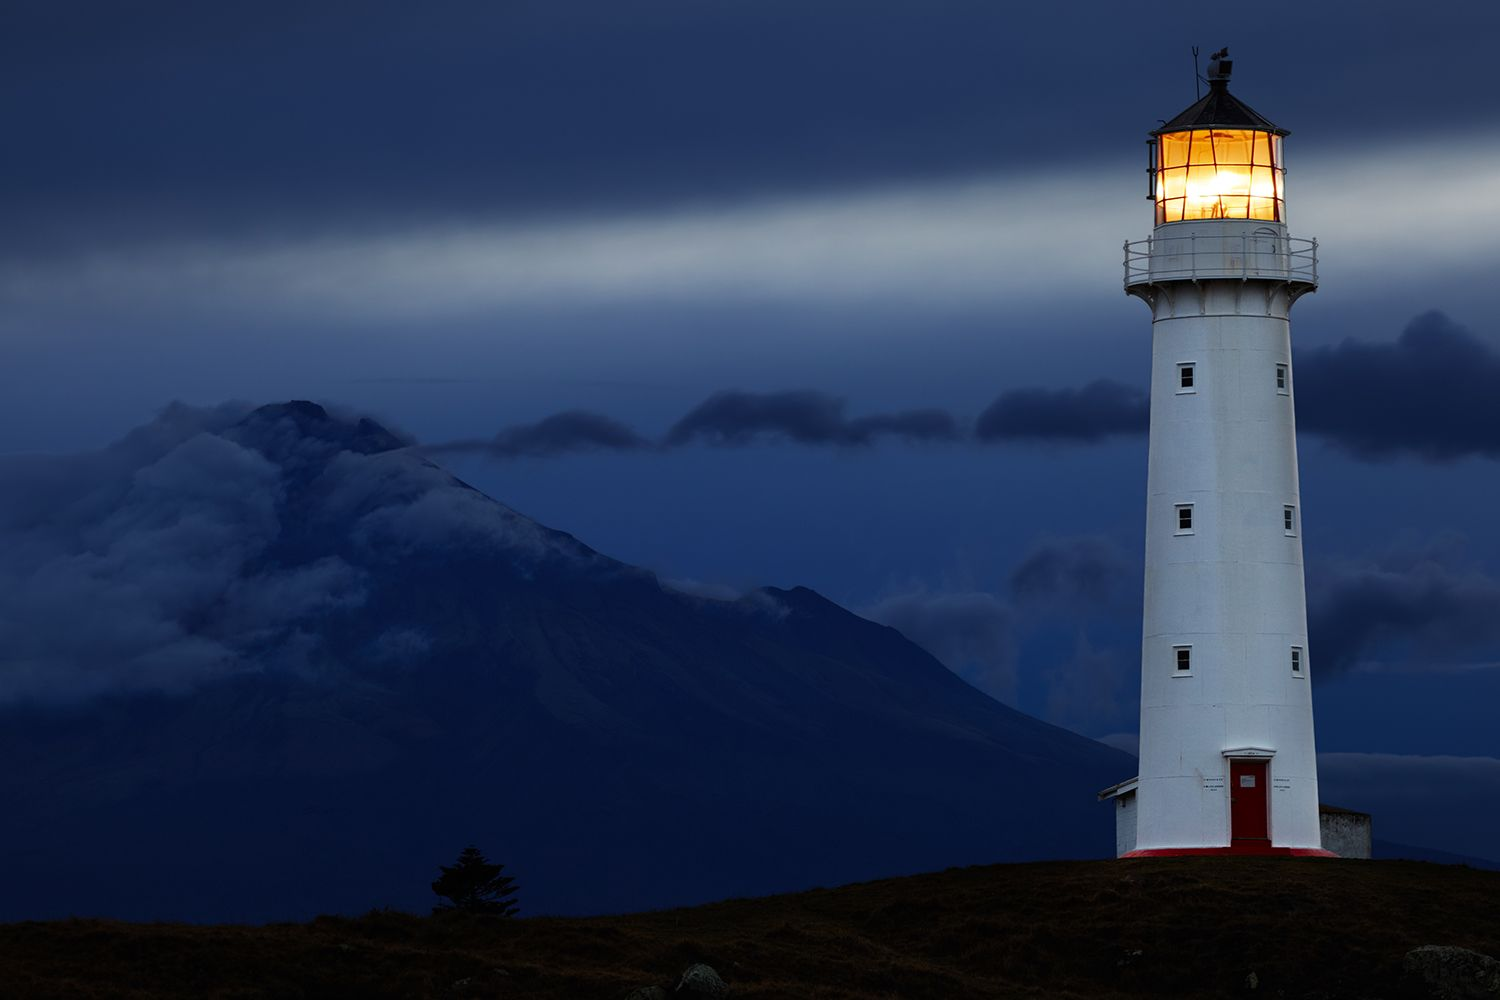 Lighthouse night view